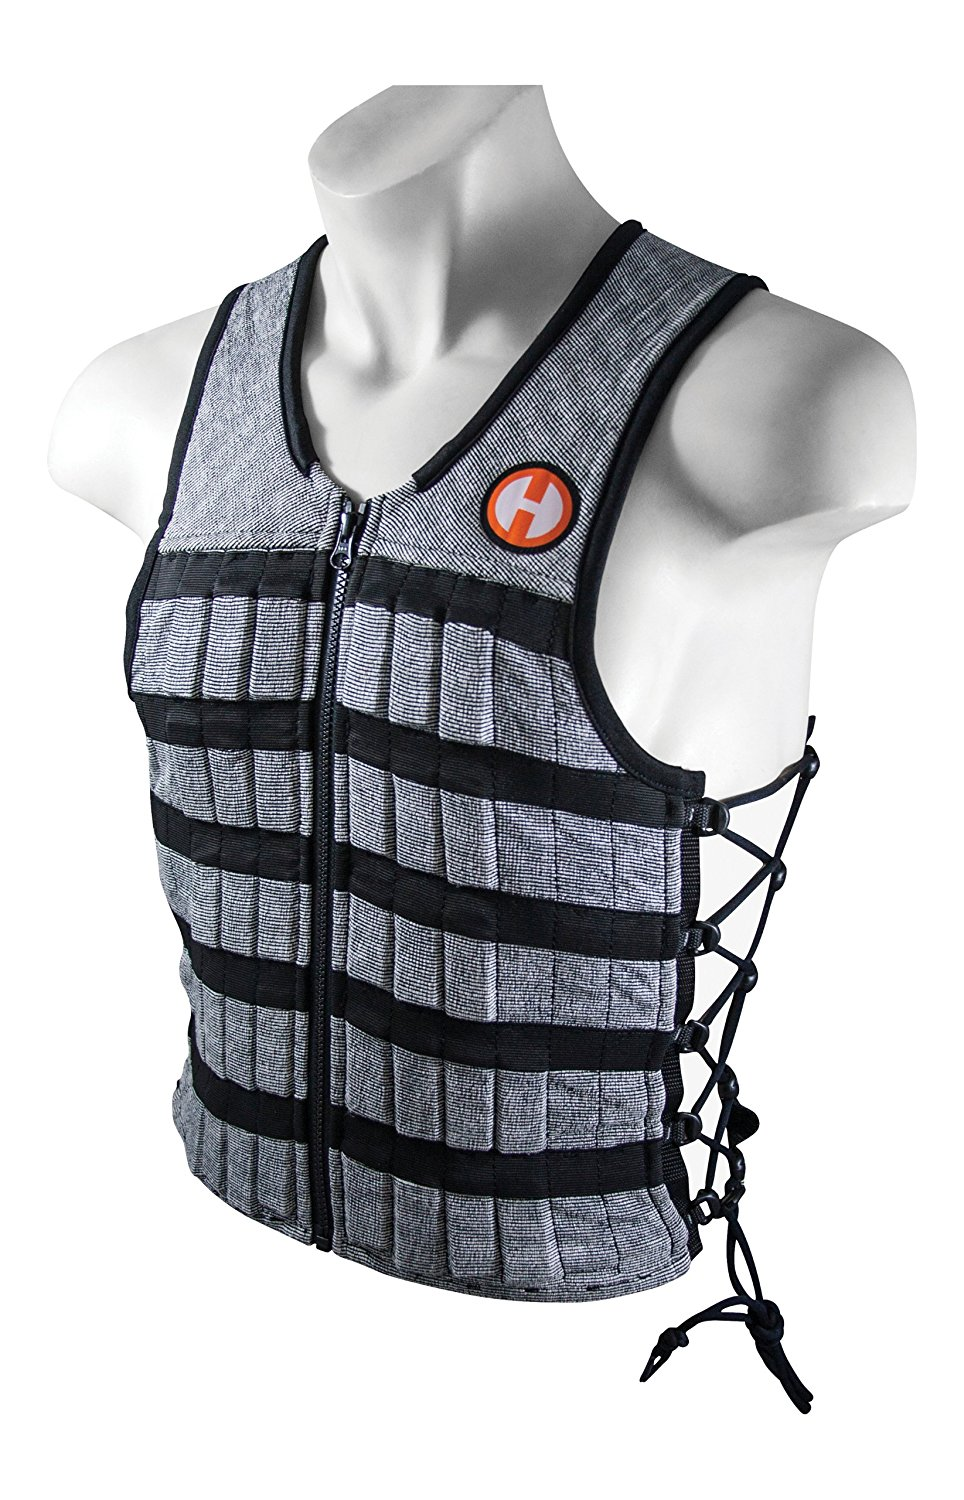 Hyperwear Hyper Vest PRO Unisex 10-Pound Adjustable Weighted Vest